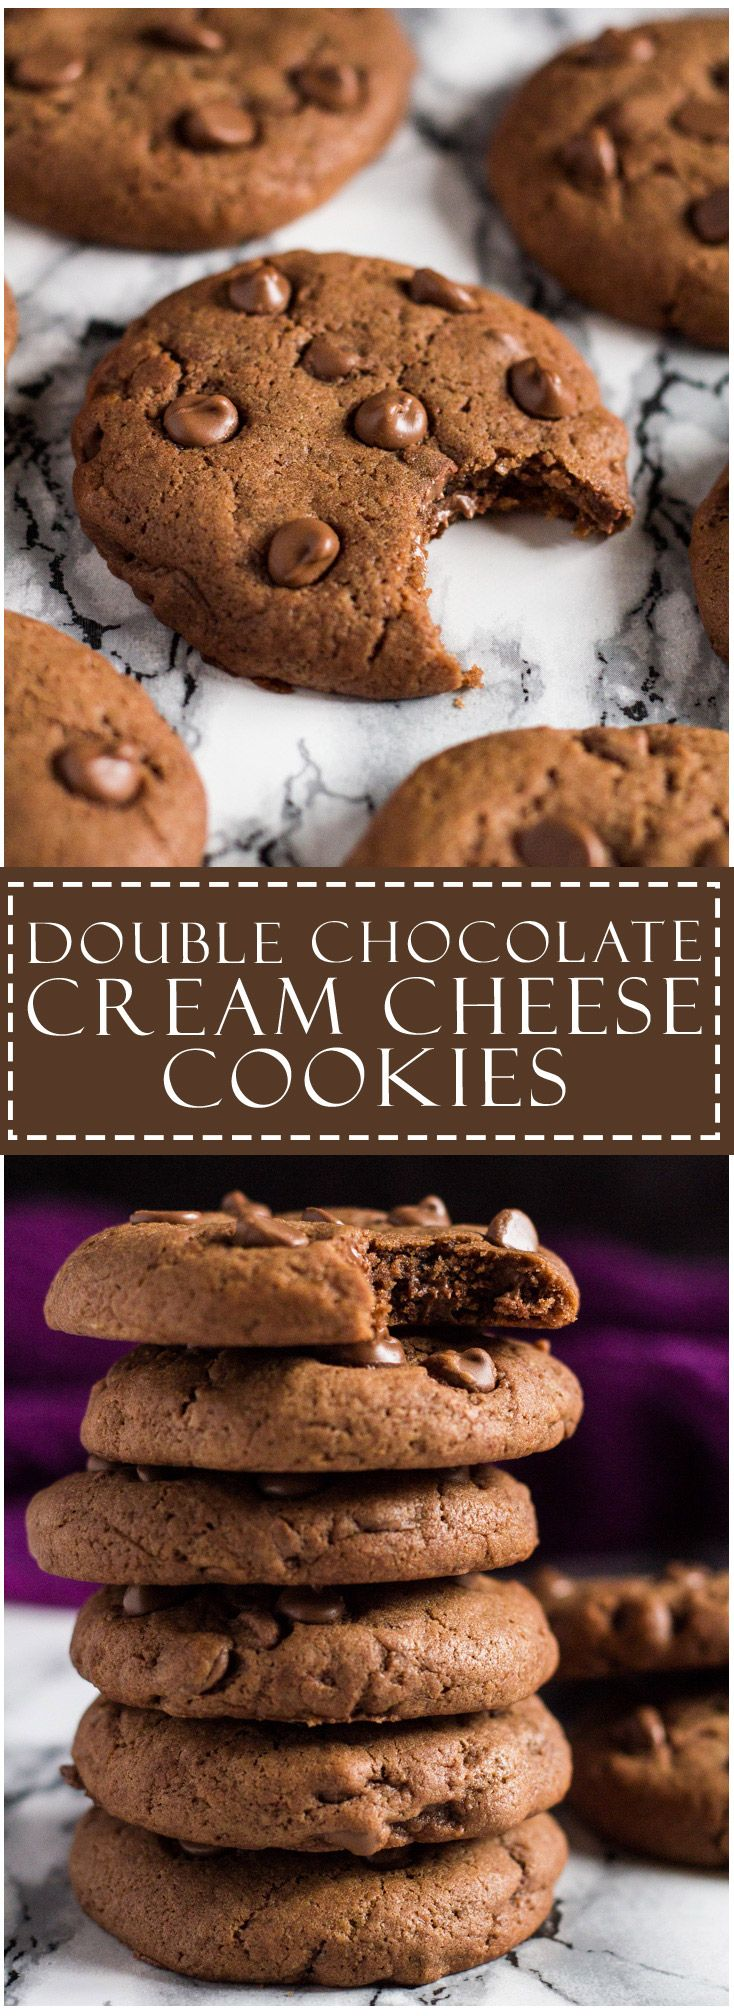 Double Chocolate Cream Cheese Cookies | marshasbakingaddiction.com…